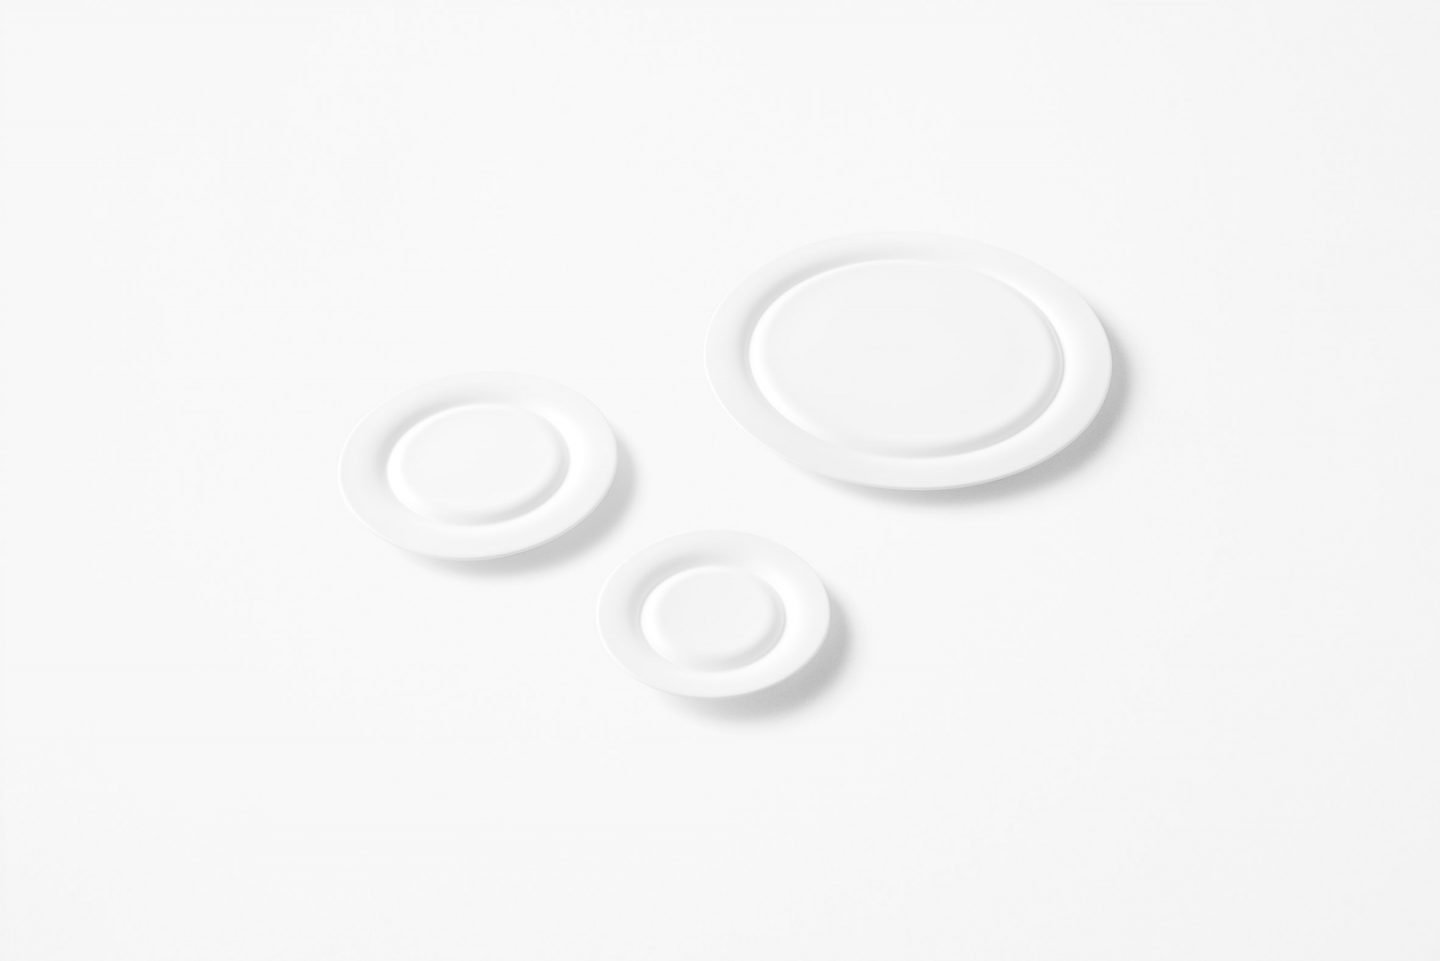 iGNANT-Design-Nendo-Zen-Collection-12